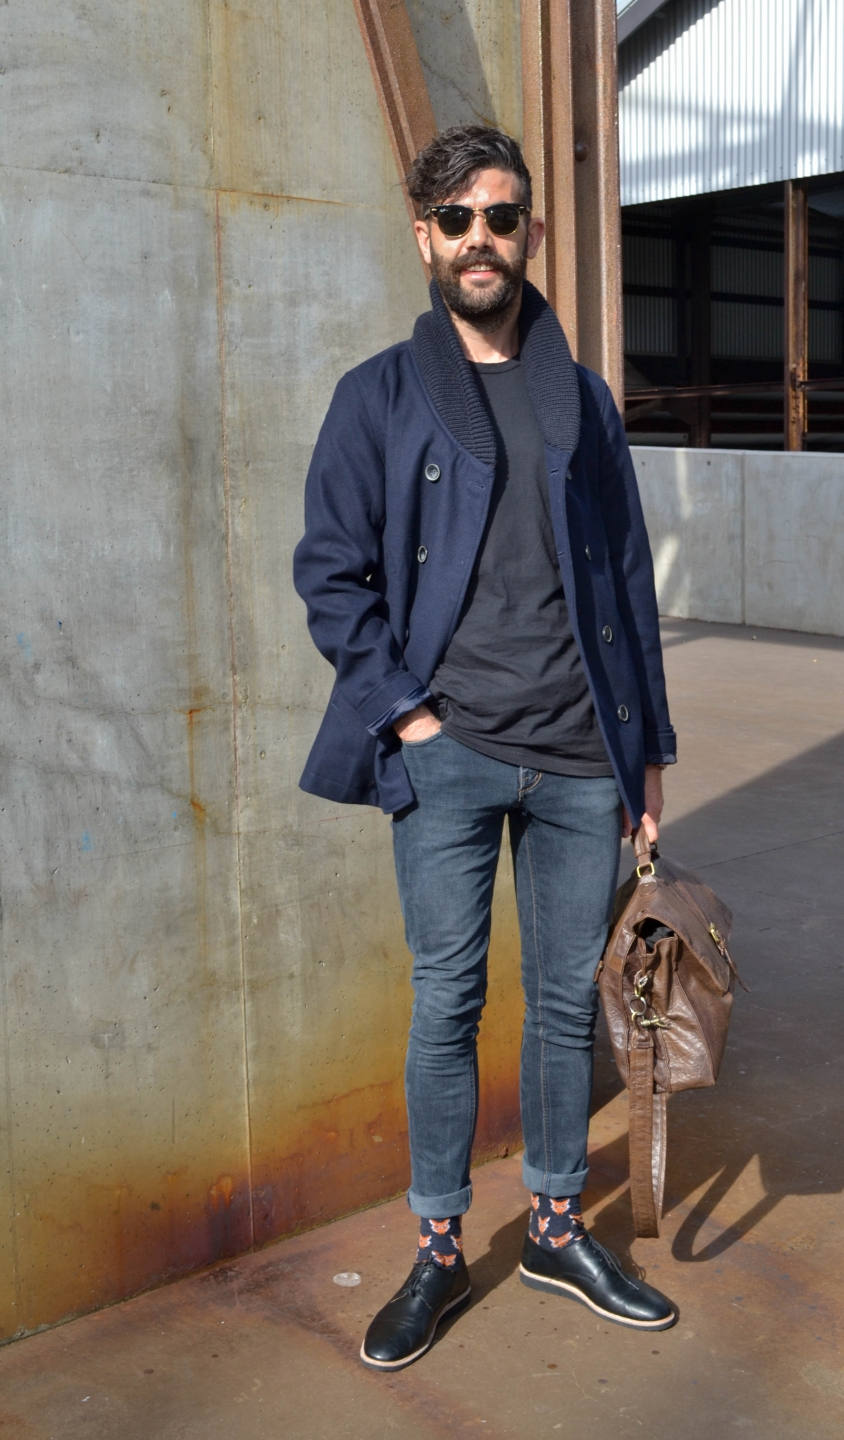 "NSW: Neil O'Sullivan, national marketing & communications manager, at Mercedes-Benz Fashion Week. ""My style is quirky for an Irishman."" Photo: Alice Sciberras."